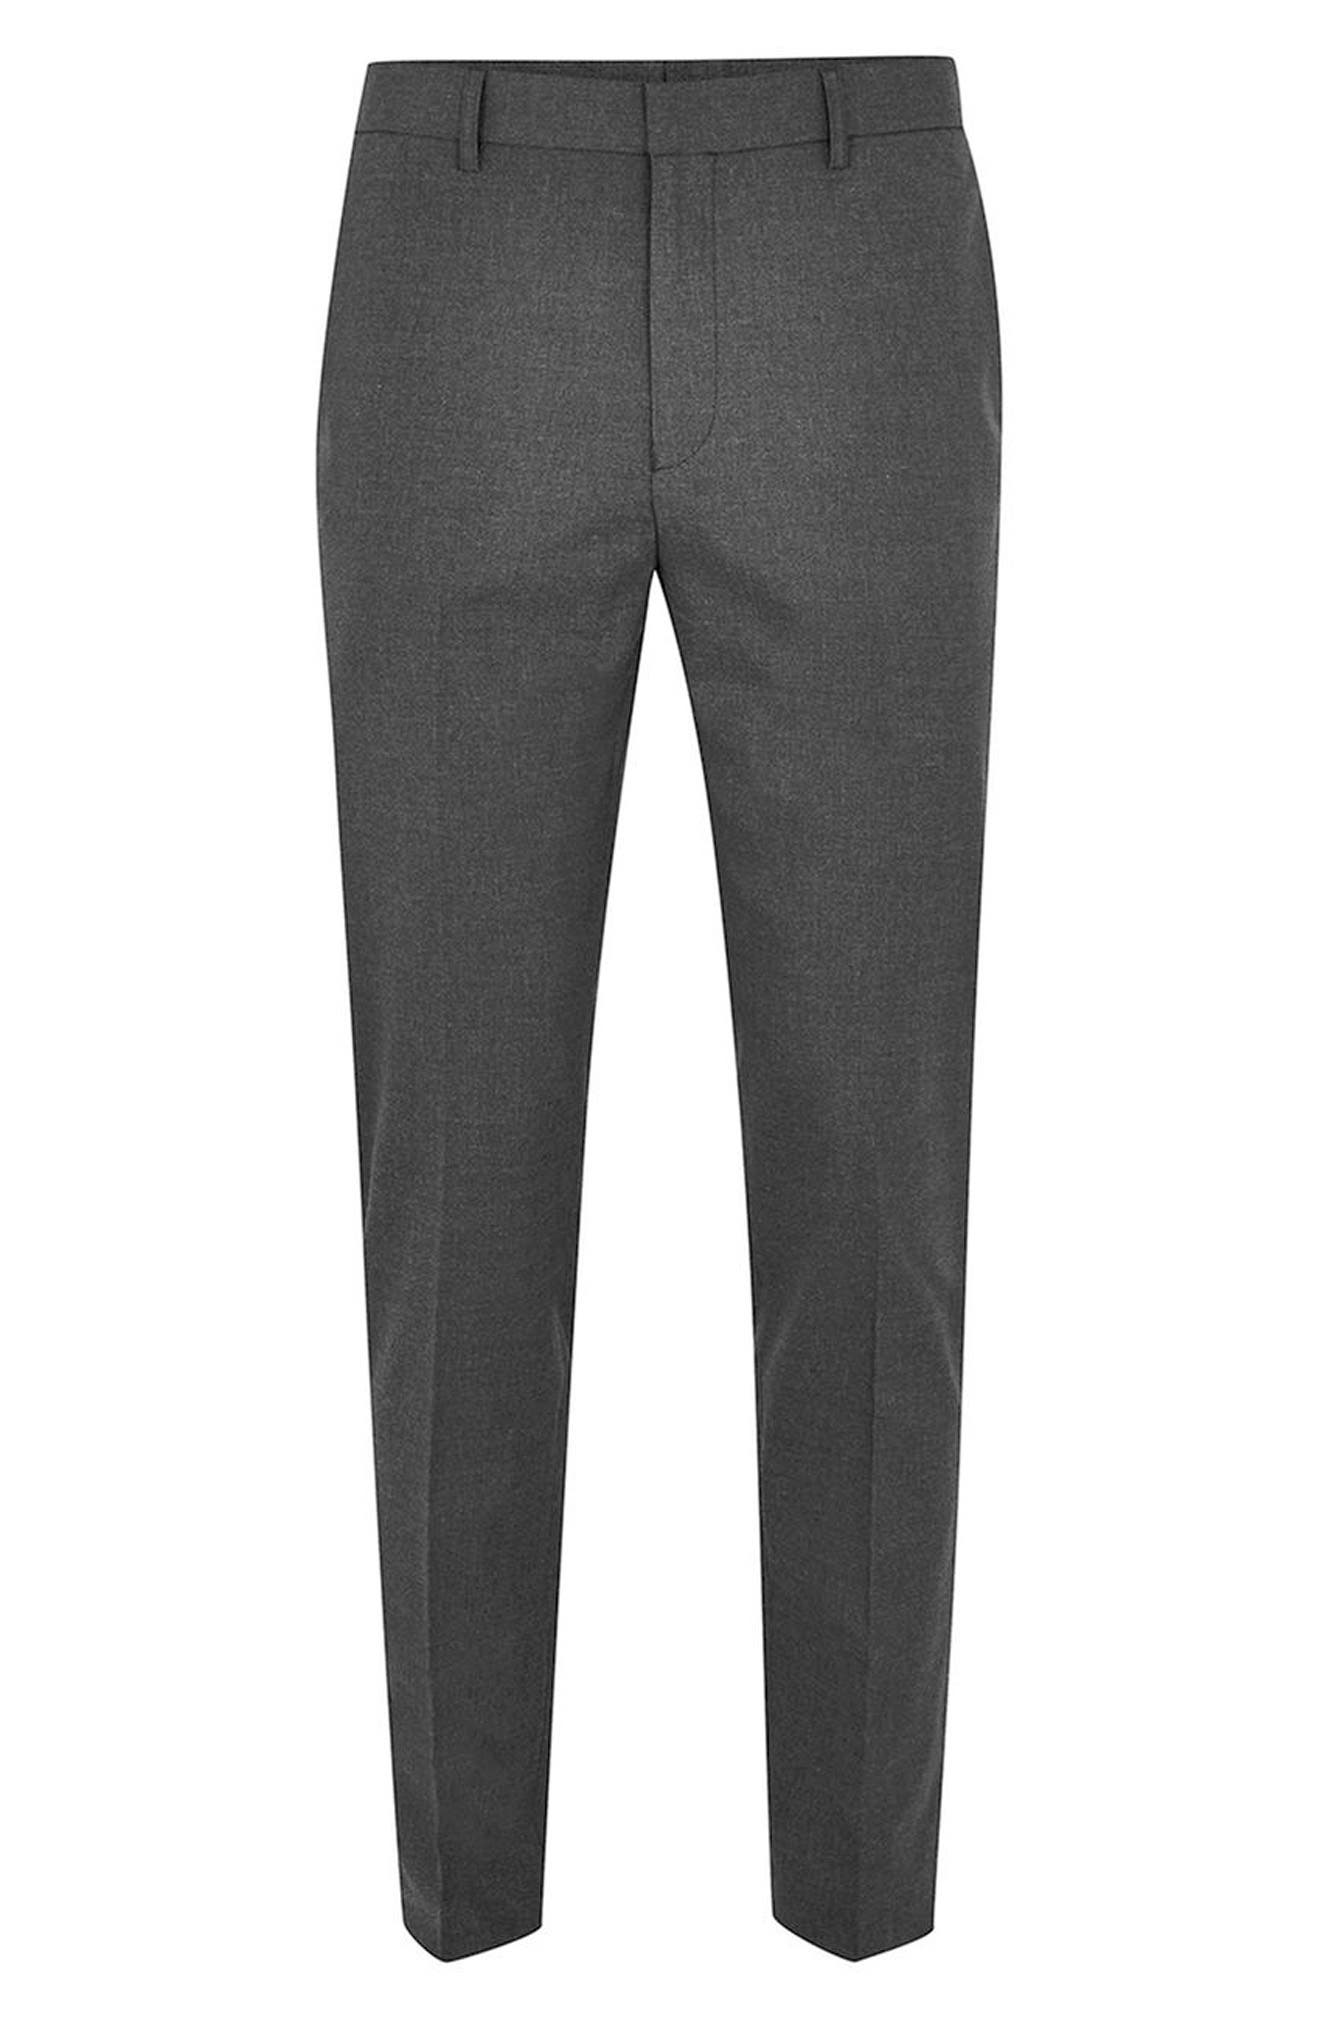 Skinny Fit Trousers,                             Alternate thumbnail 4, color,                             Charcoal